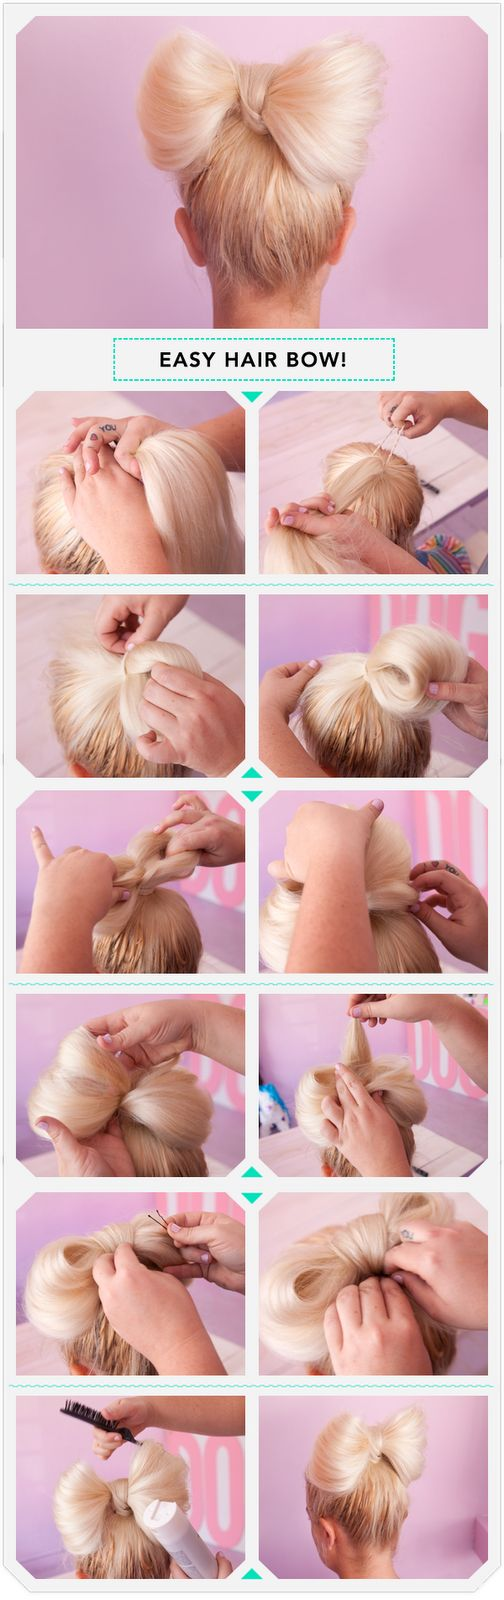 I tried this on my 7 year old daughter who has very thin hair and it still worked and looked so cute. She loved it!!